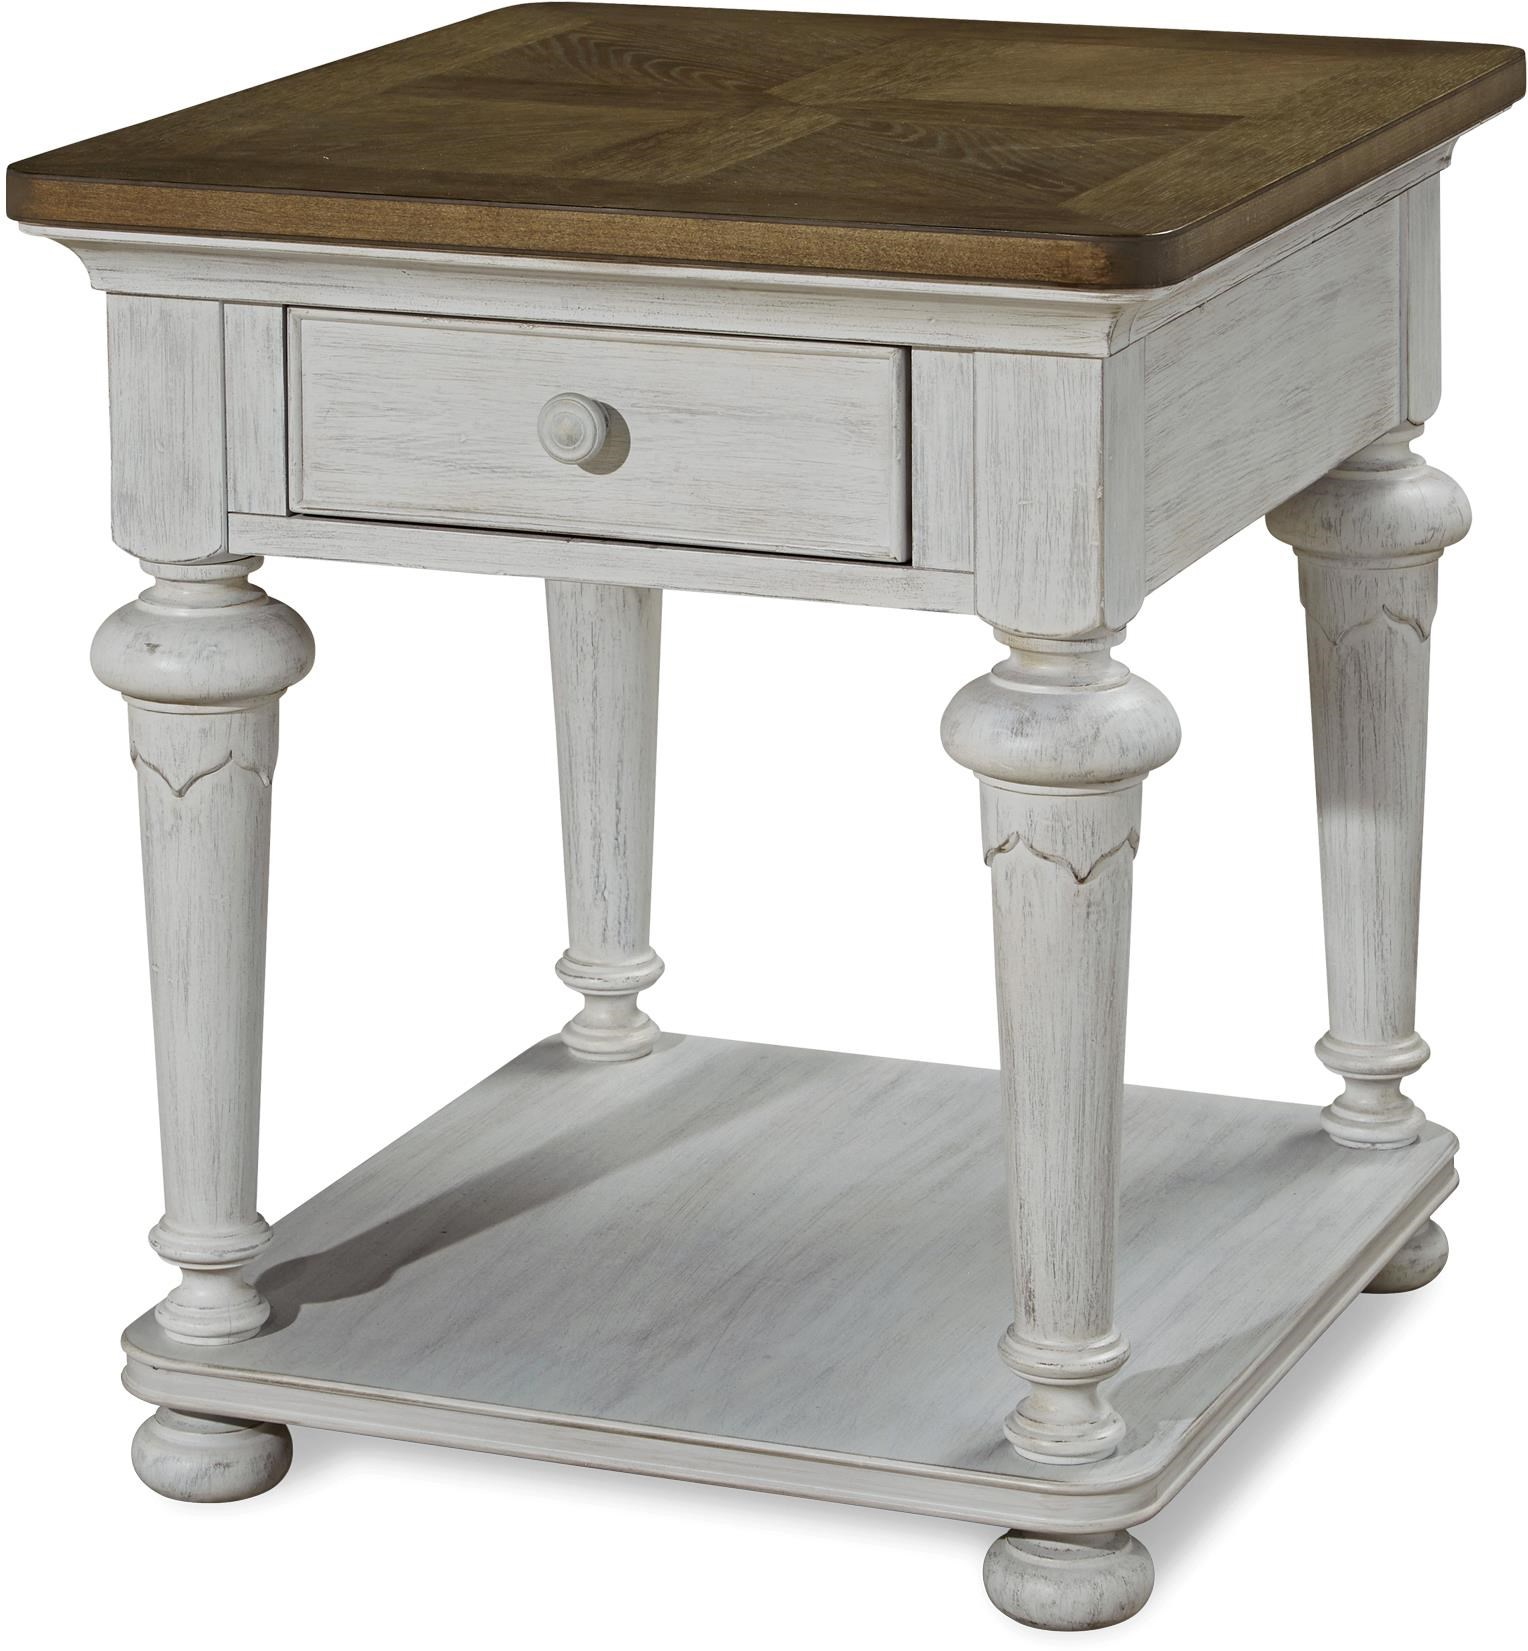 Paula Deen By Universal Dogwood End Table With Shelf